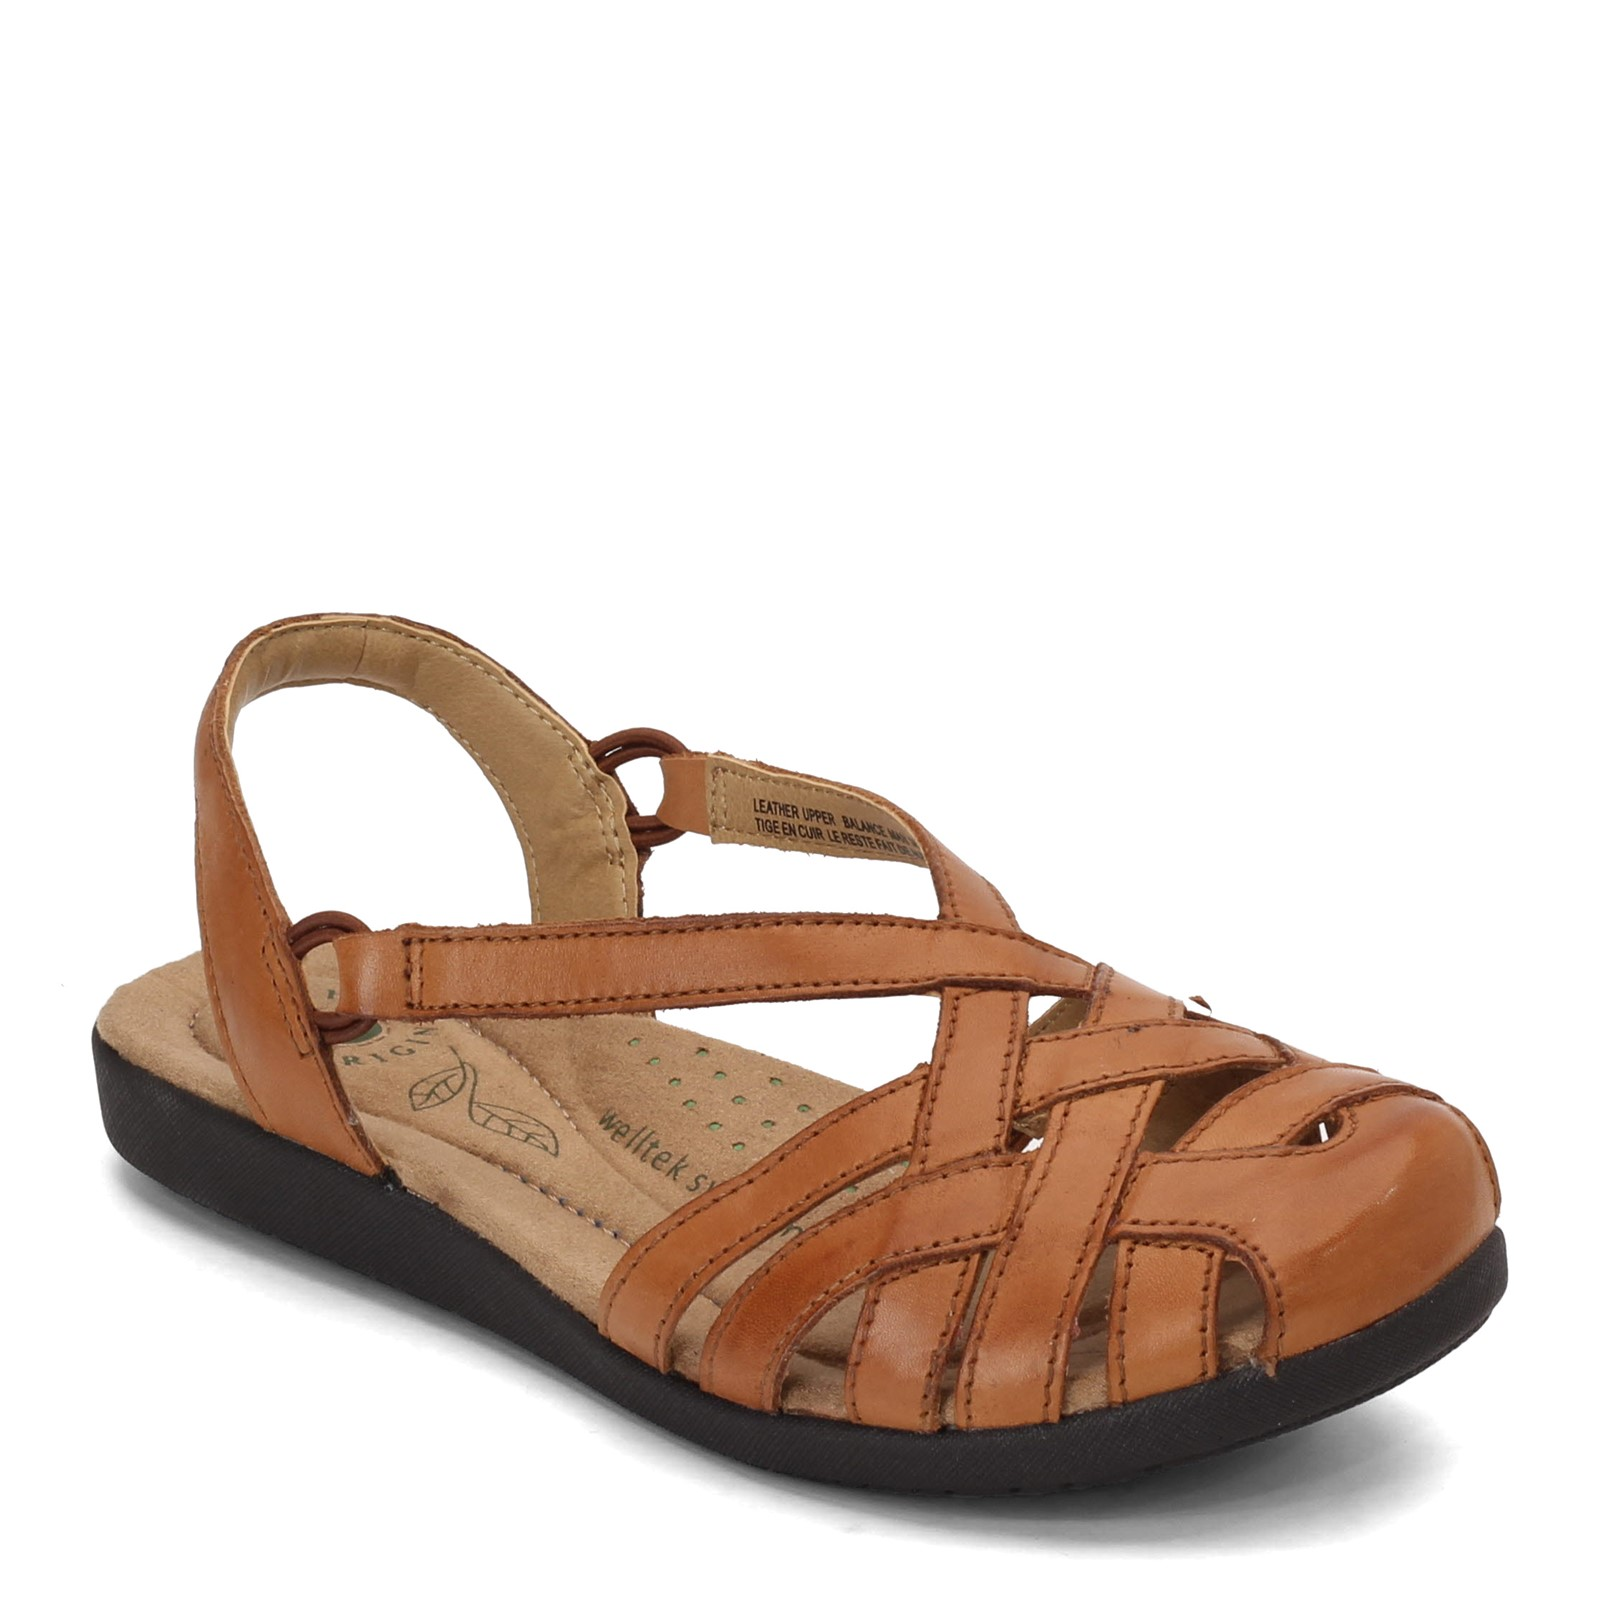 437dbd22a Home; Women's Earth Origins, Nellie Sandal. Previous. default view ...